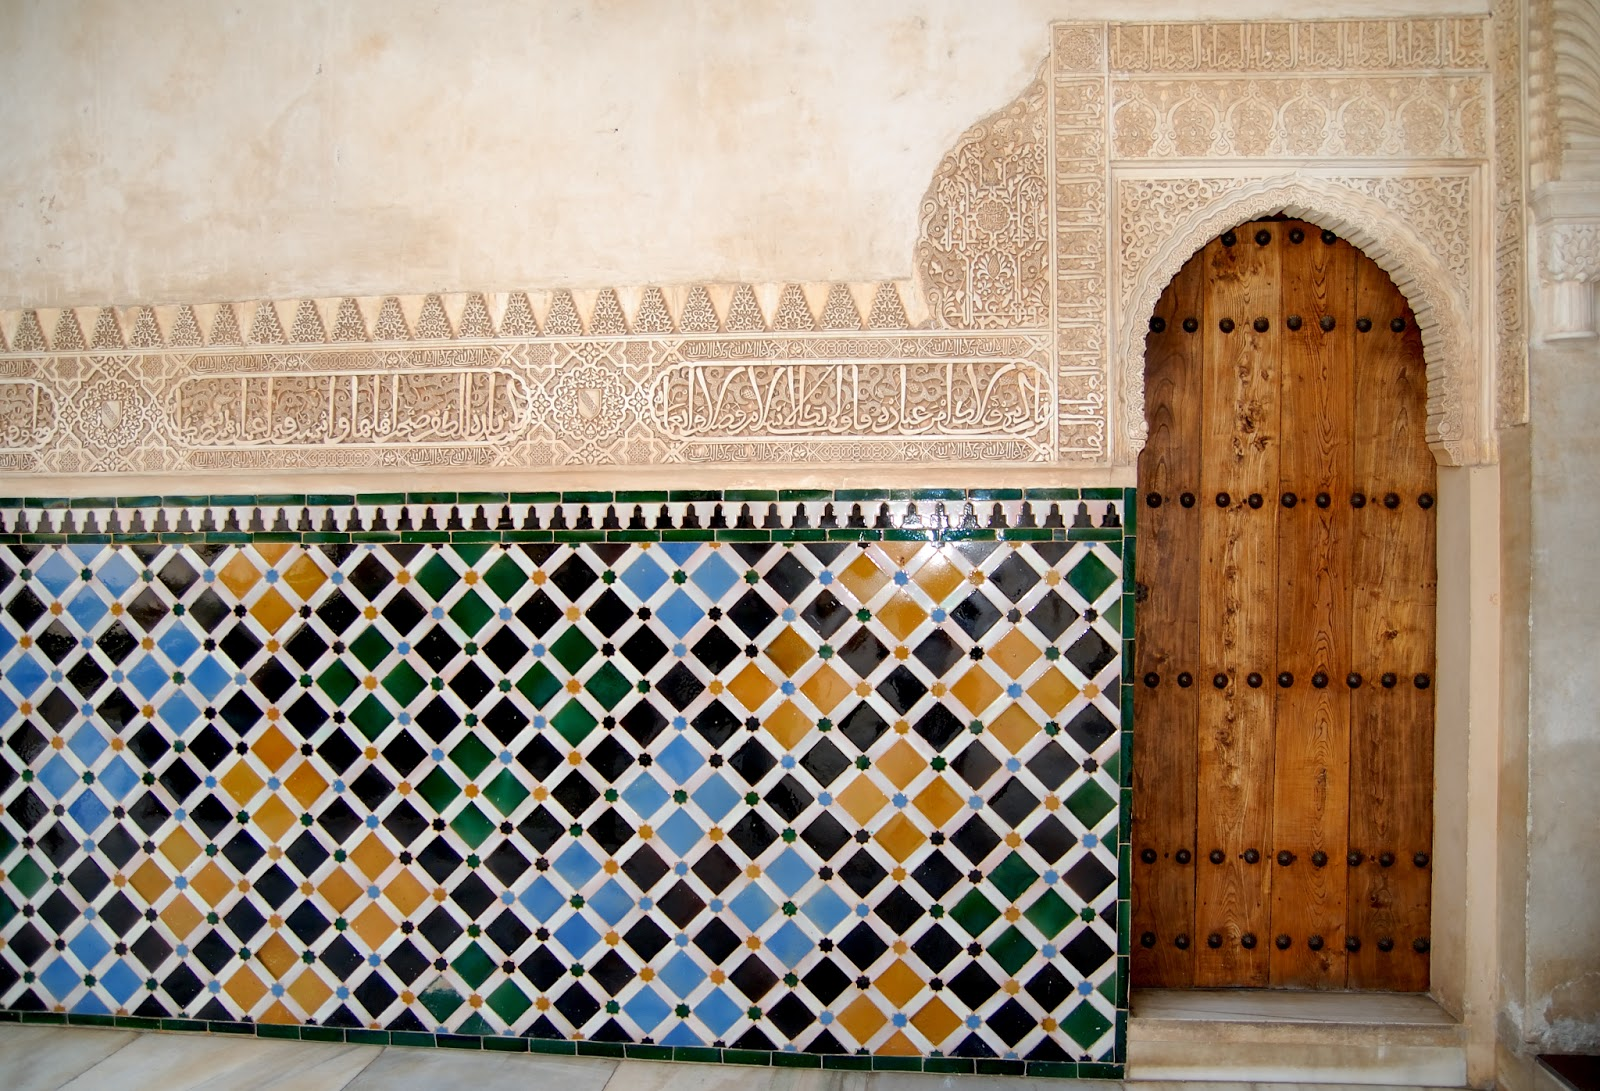 Mosaics the alhambra geometry and mc escher architectural southern spain is rich in this type of mosaic as well as moorish influenced architecture that region of spain during the middle ages with its culture of dailygadgetfo Gallery